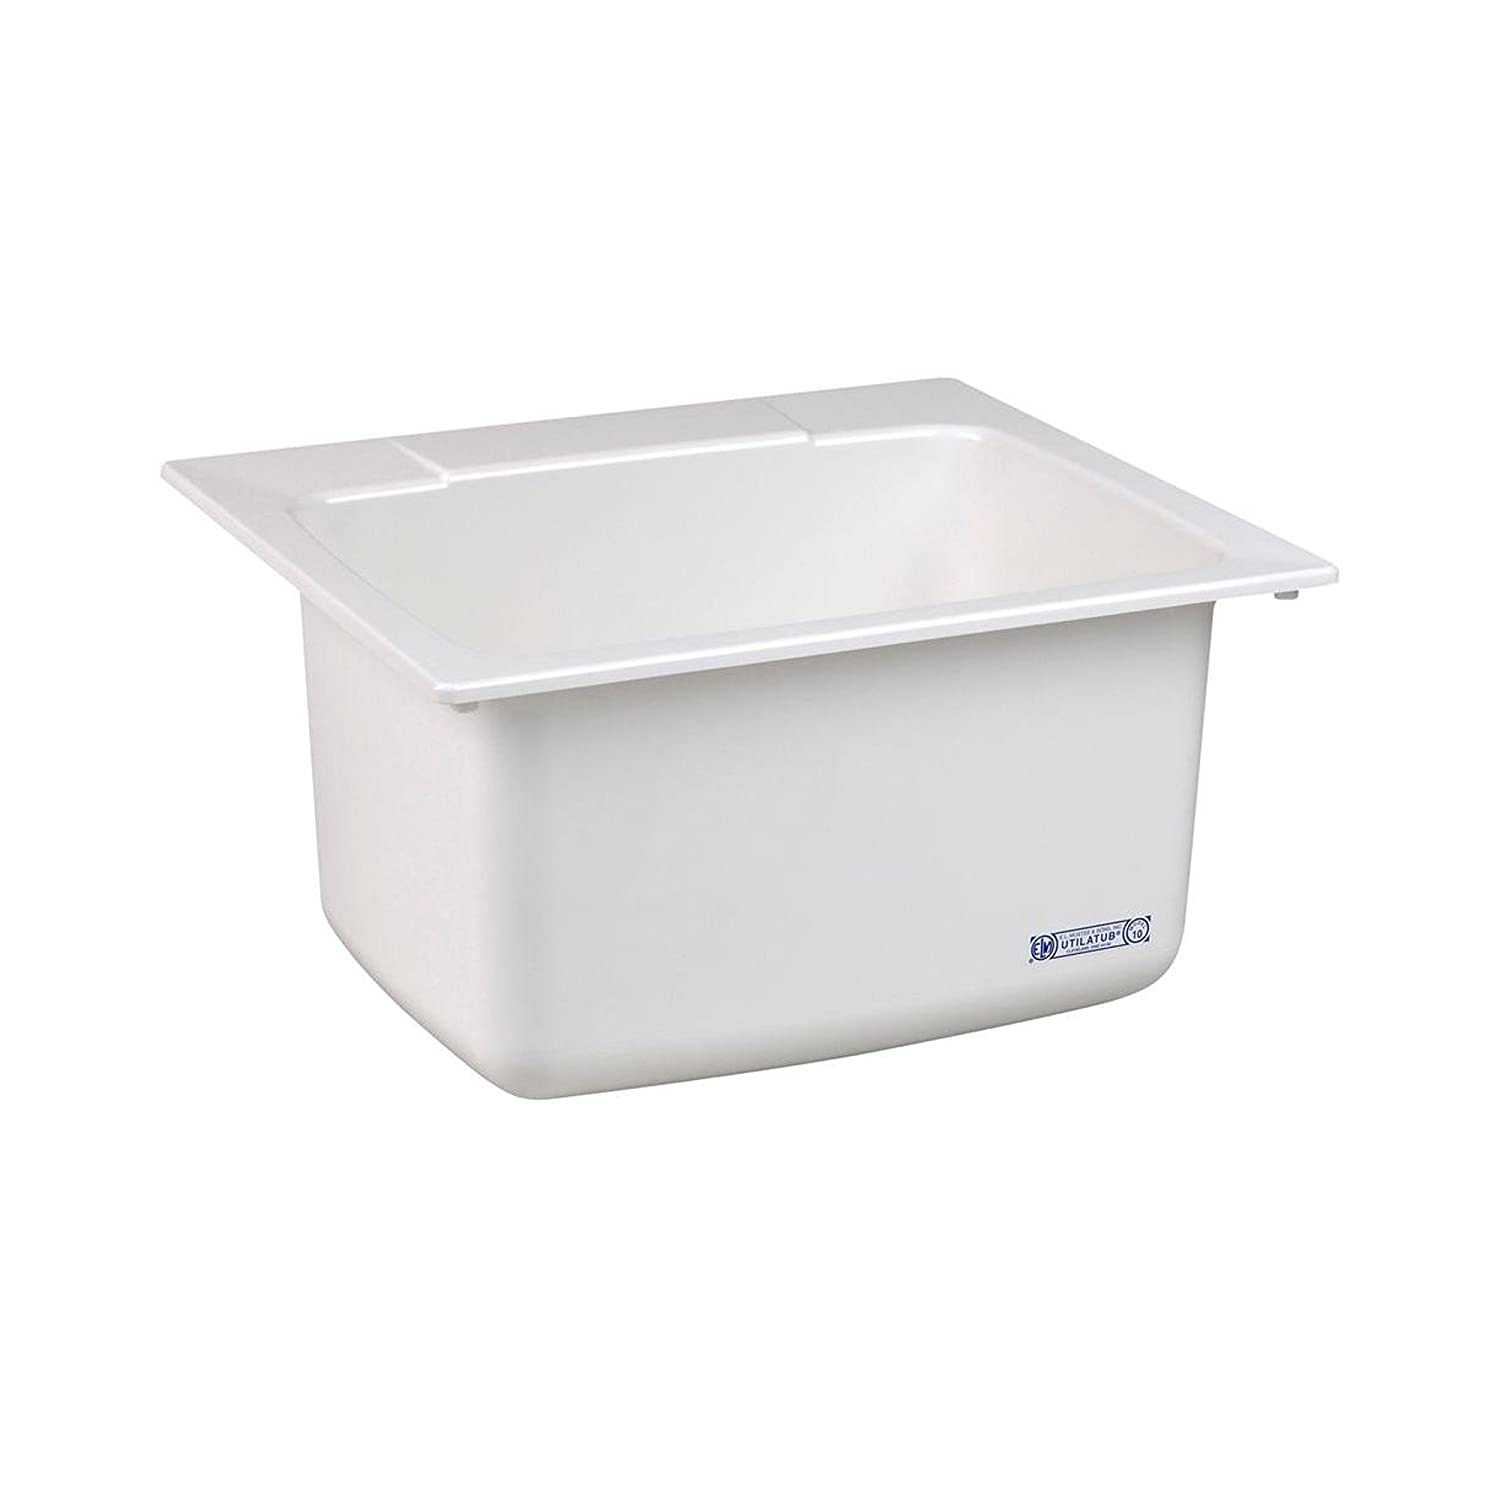 Small Laundry Tubs Sinks : Small+Utility+Sink small plastic utility sink Quotes